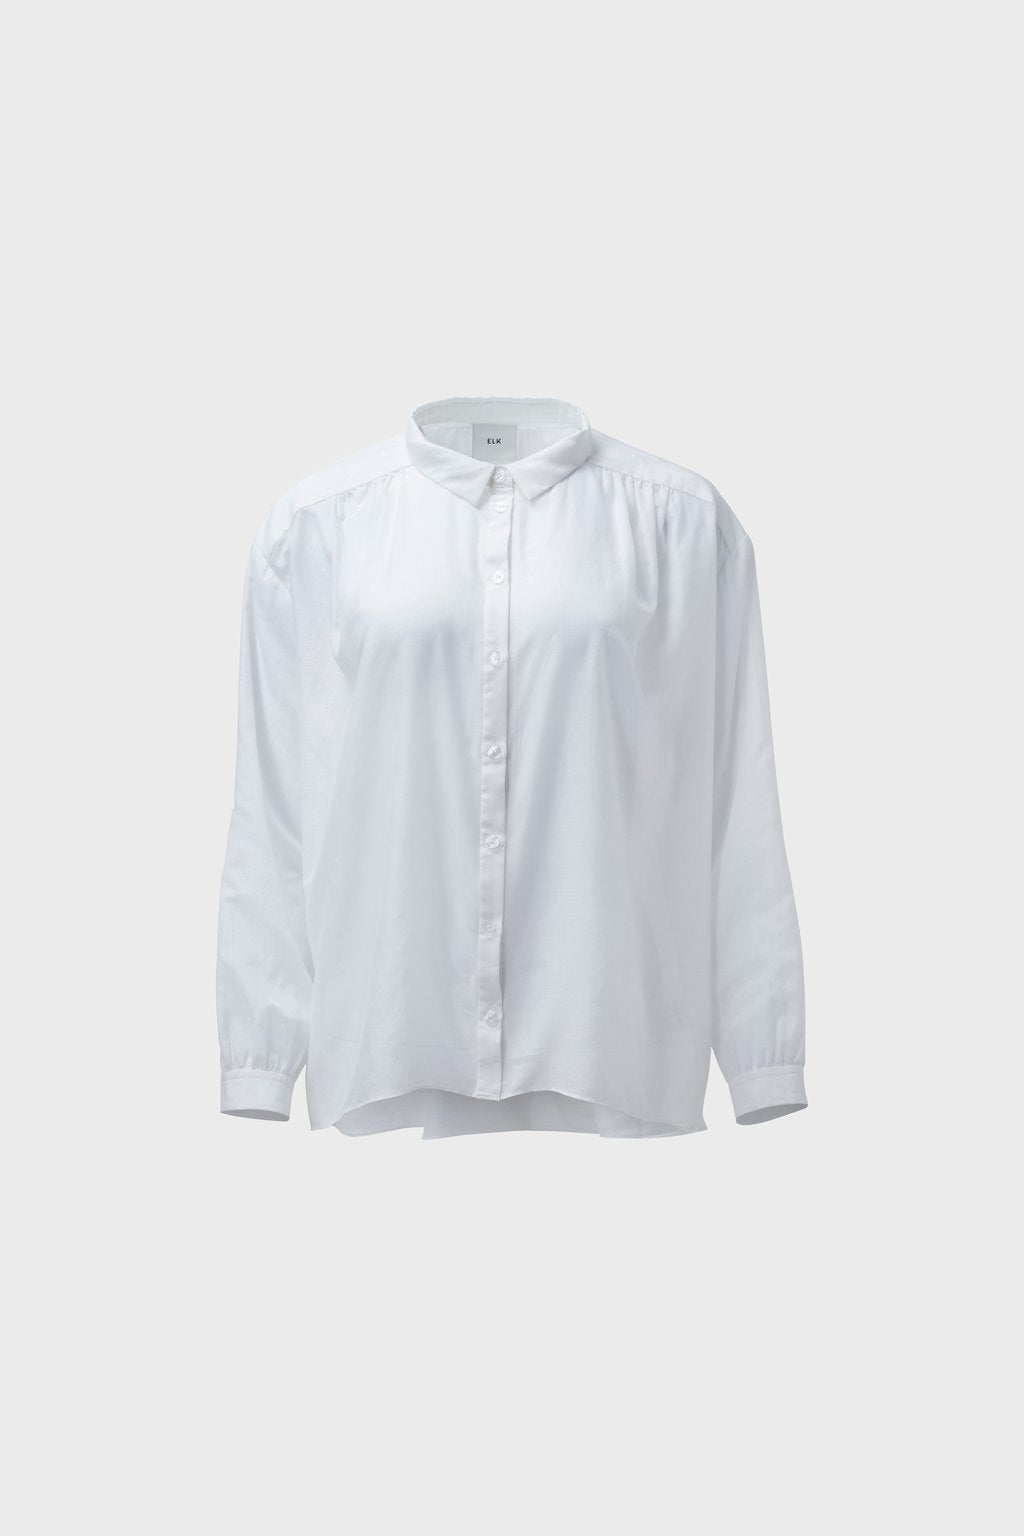 ELK The Label - Liah Shirt online at PAYA boutique